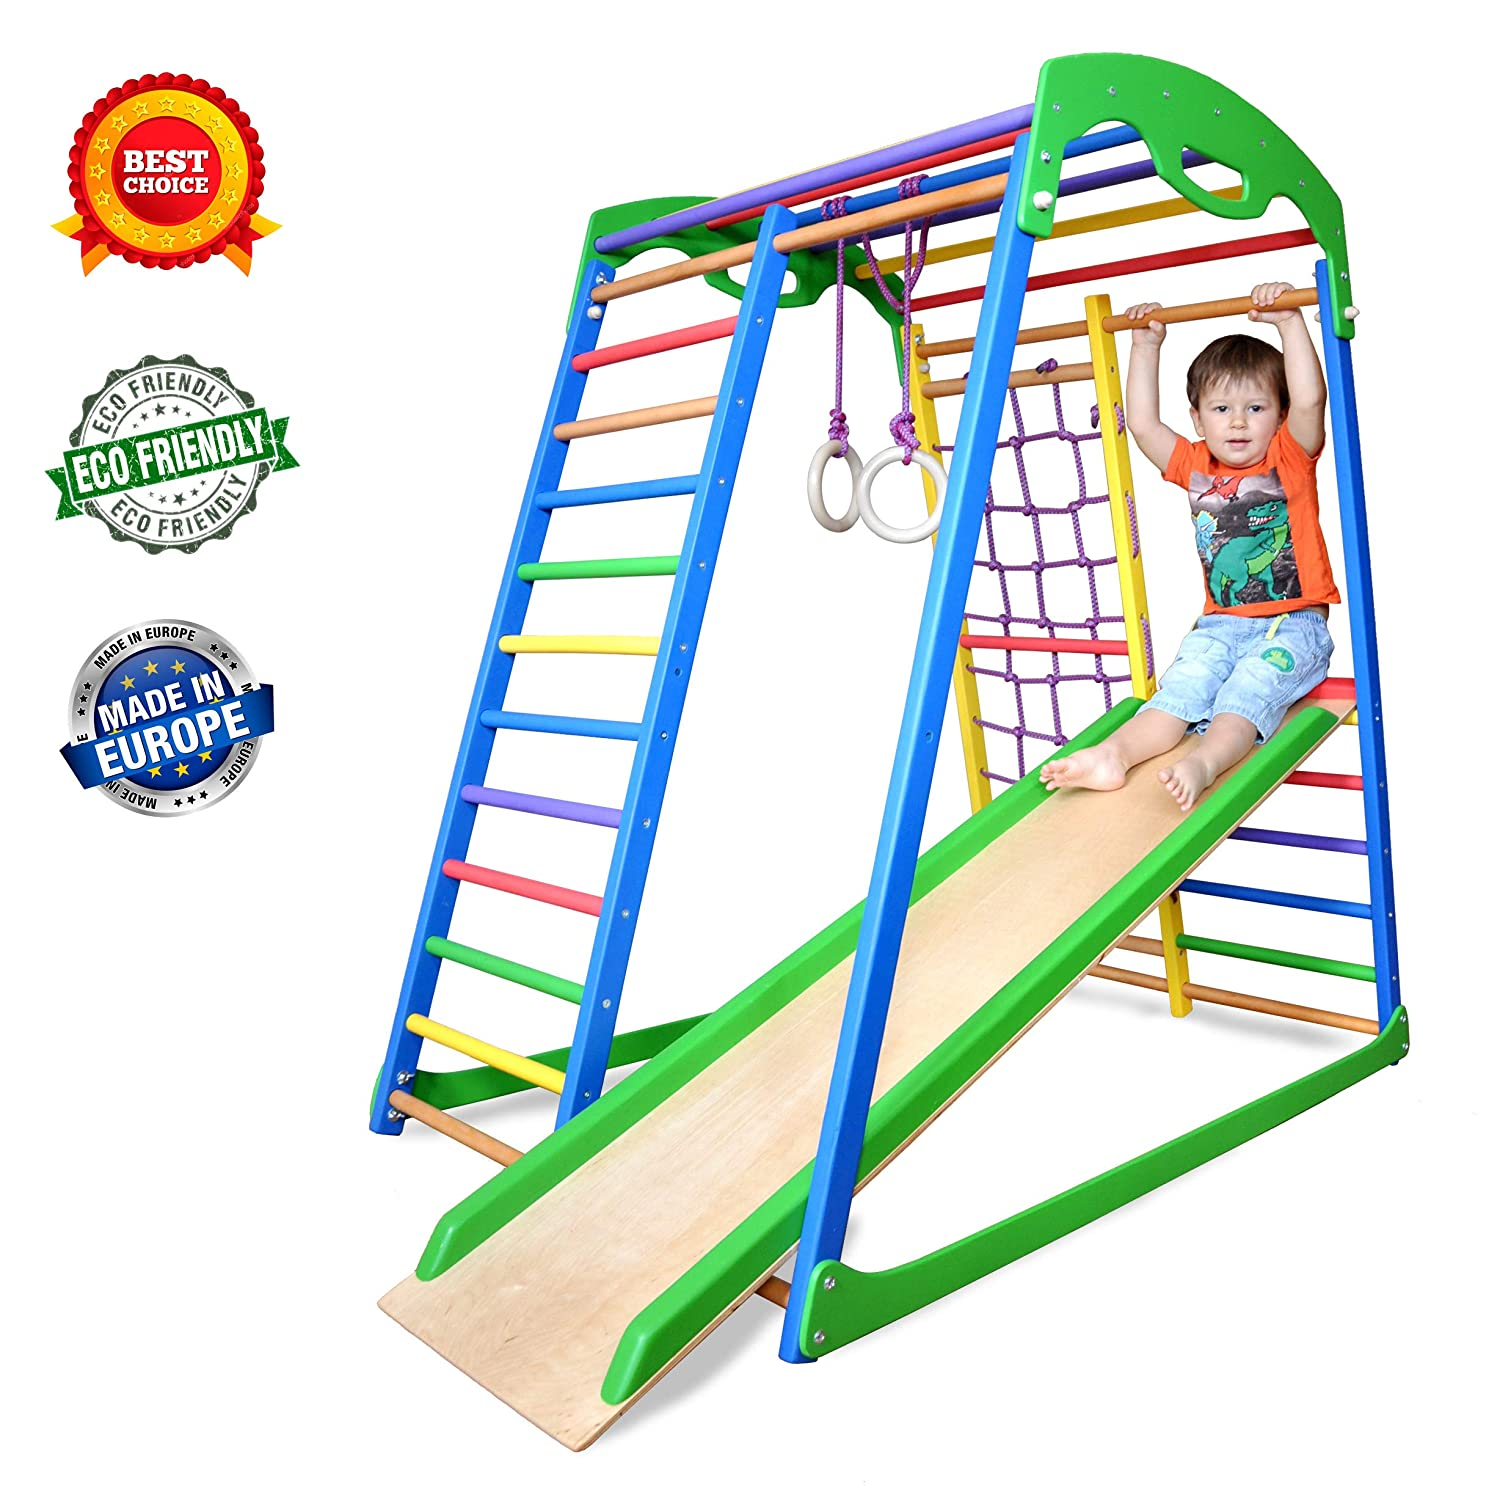 Wedanta Indoor Playground - Jungle Gym - Monkey Bars - Gymnastics Rings - Backyard Playsets for Kids - Playset for Toddlers - Toddler Climber - SportWood best backyard playset